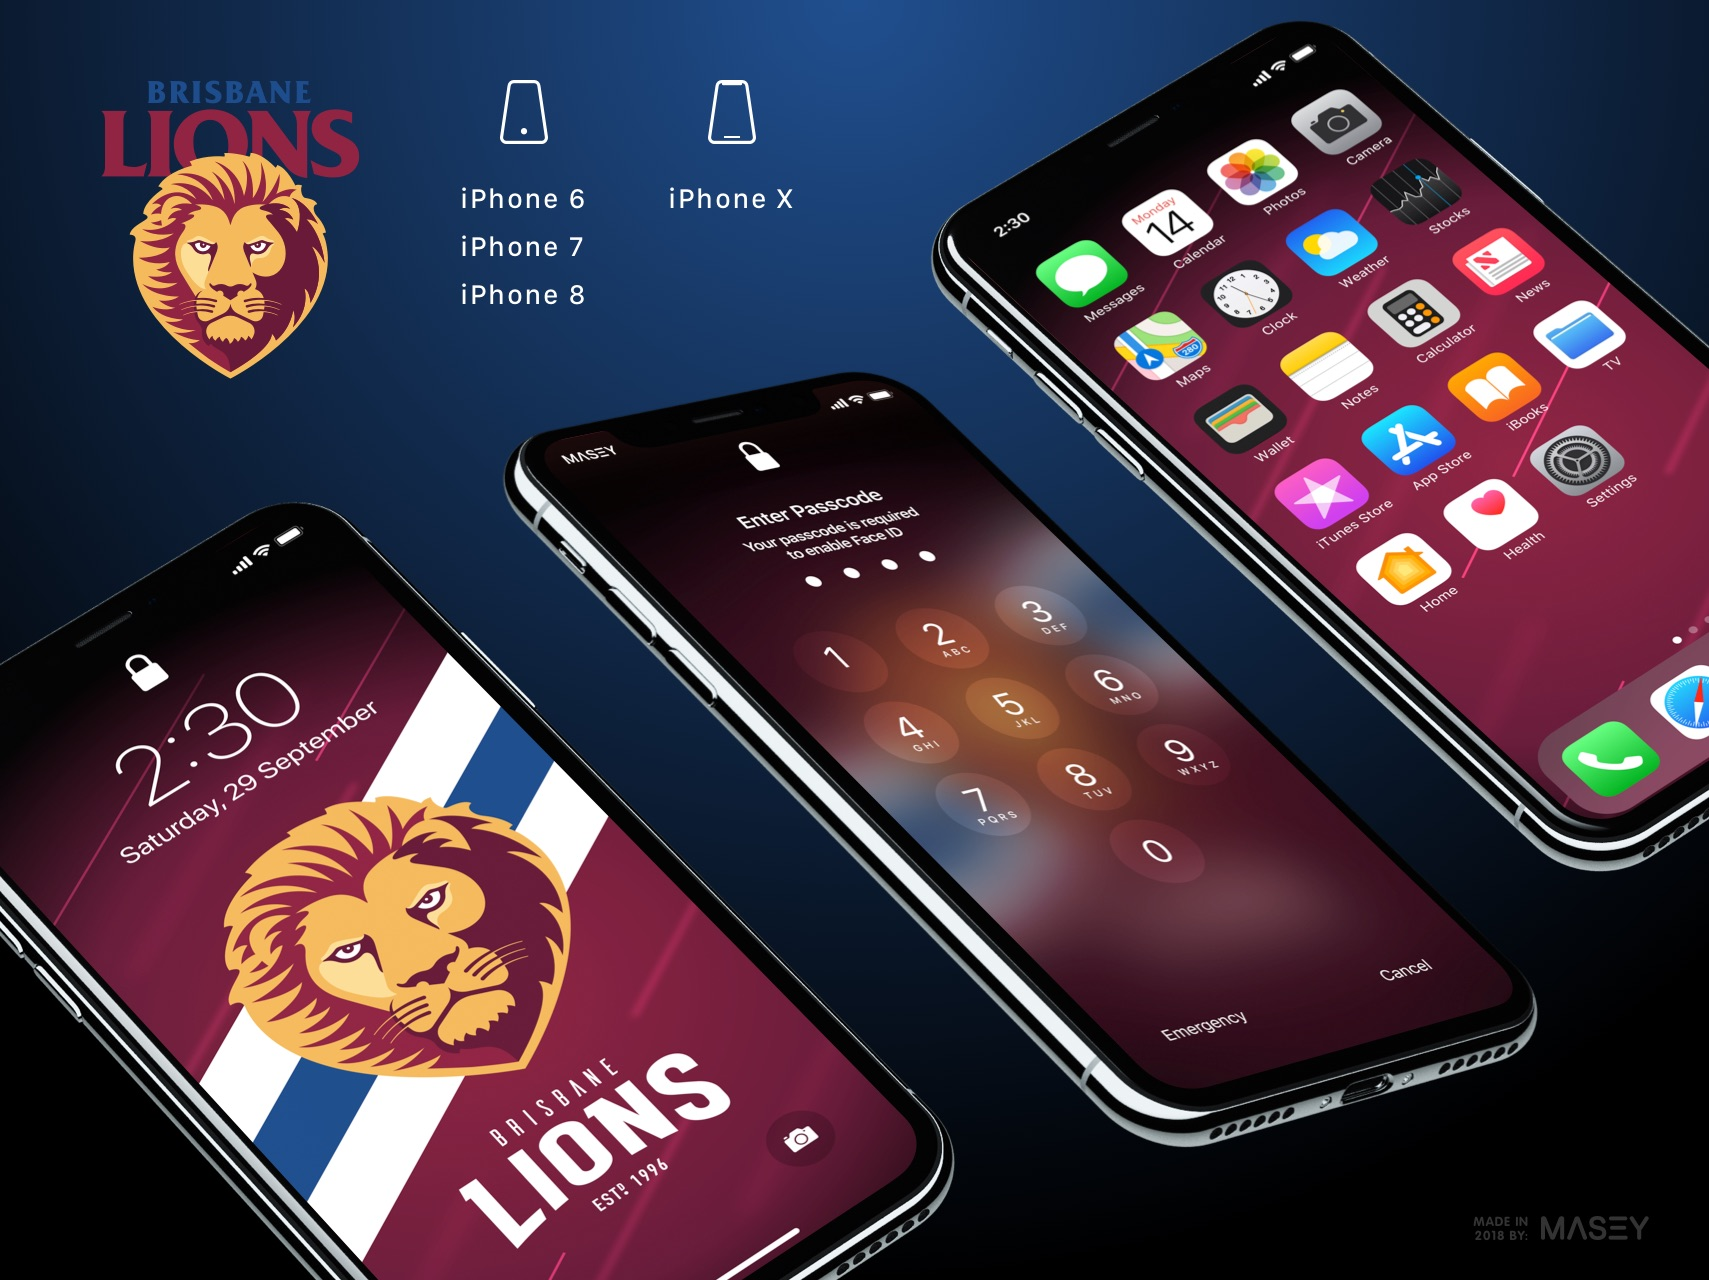 Brisbane Lions iPhone Wallpaper